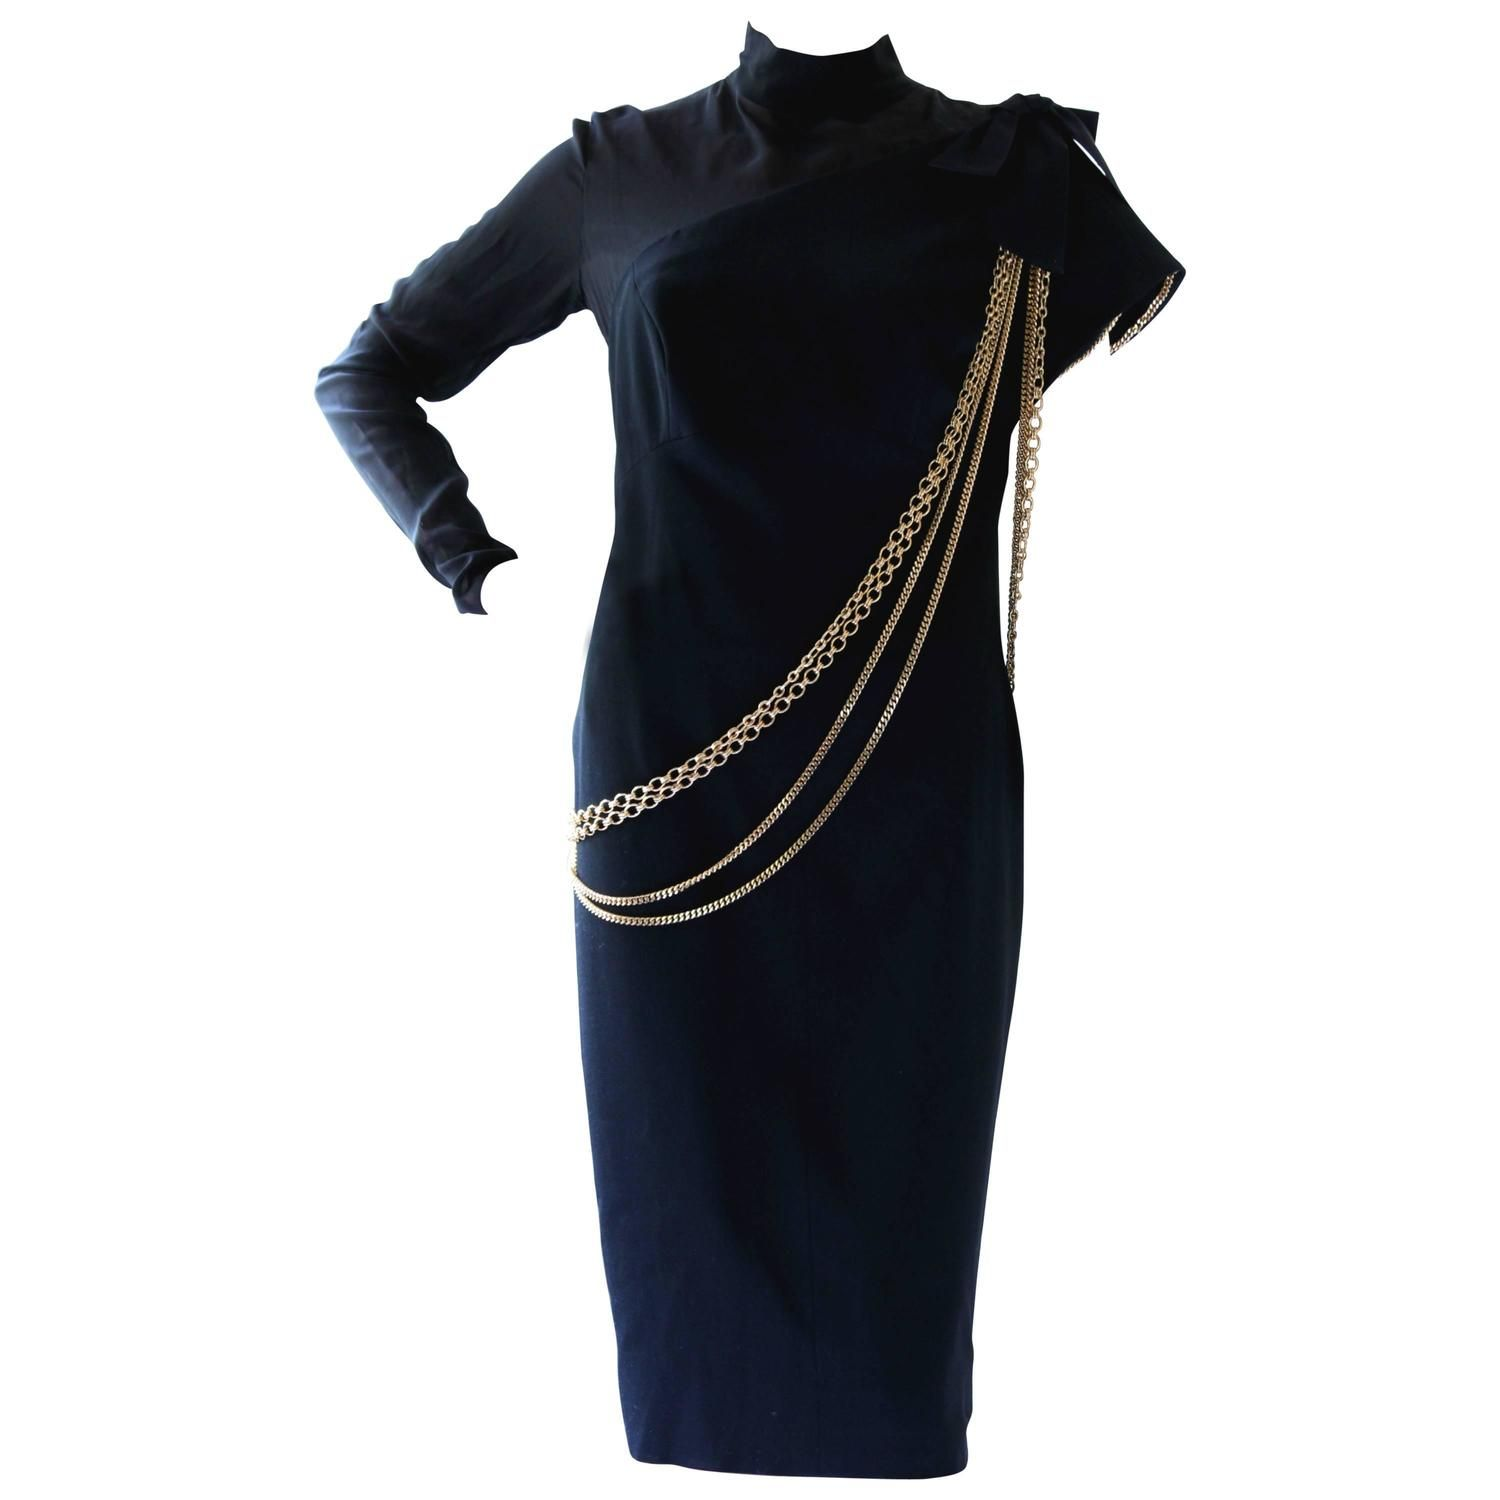 Chanel Little Black Dress With Gold Chains Wool Sheer Silk Bodice 1985 Size M 1s Chanel Little Black Dress Designer Evening Dresses Evening Dresses Vintage [ 1500 x 1500 Pixel ]